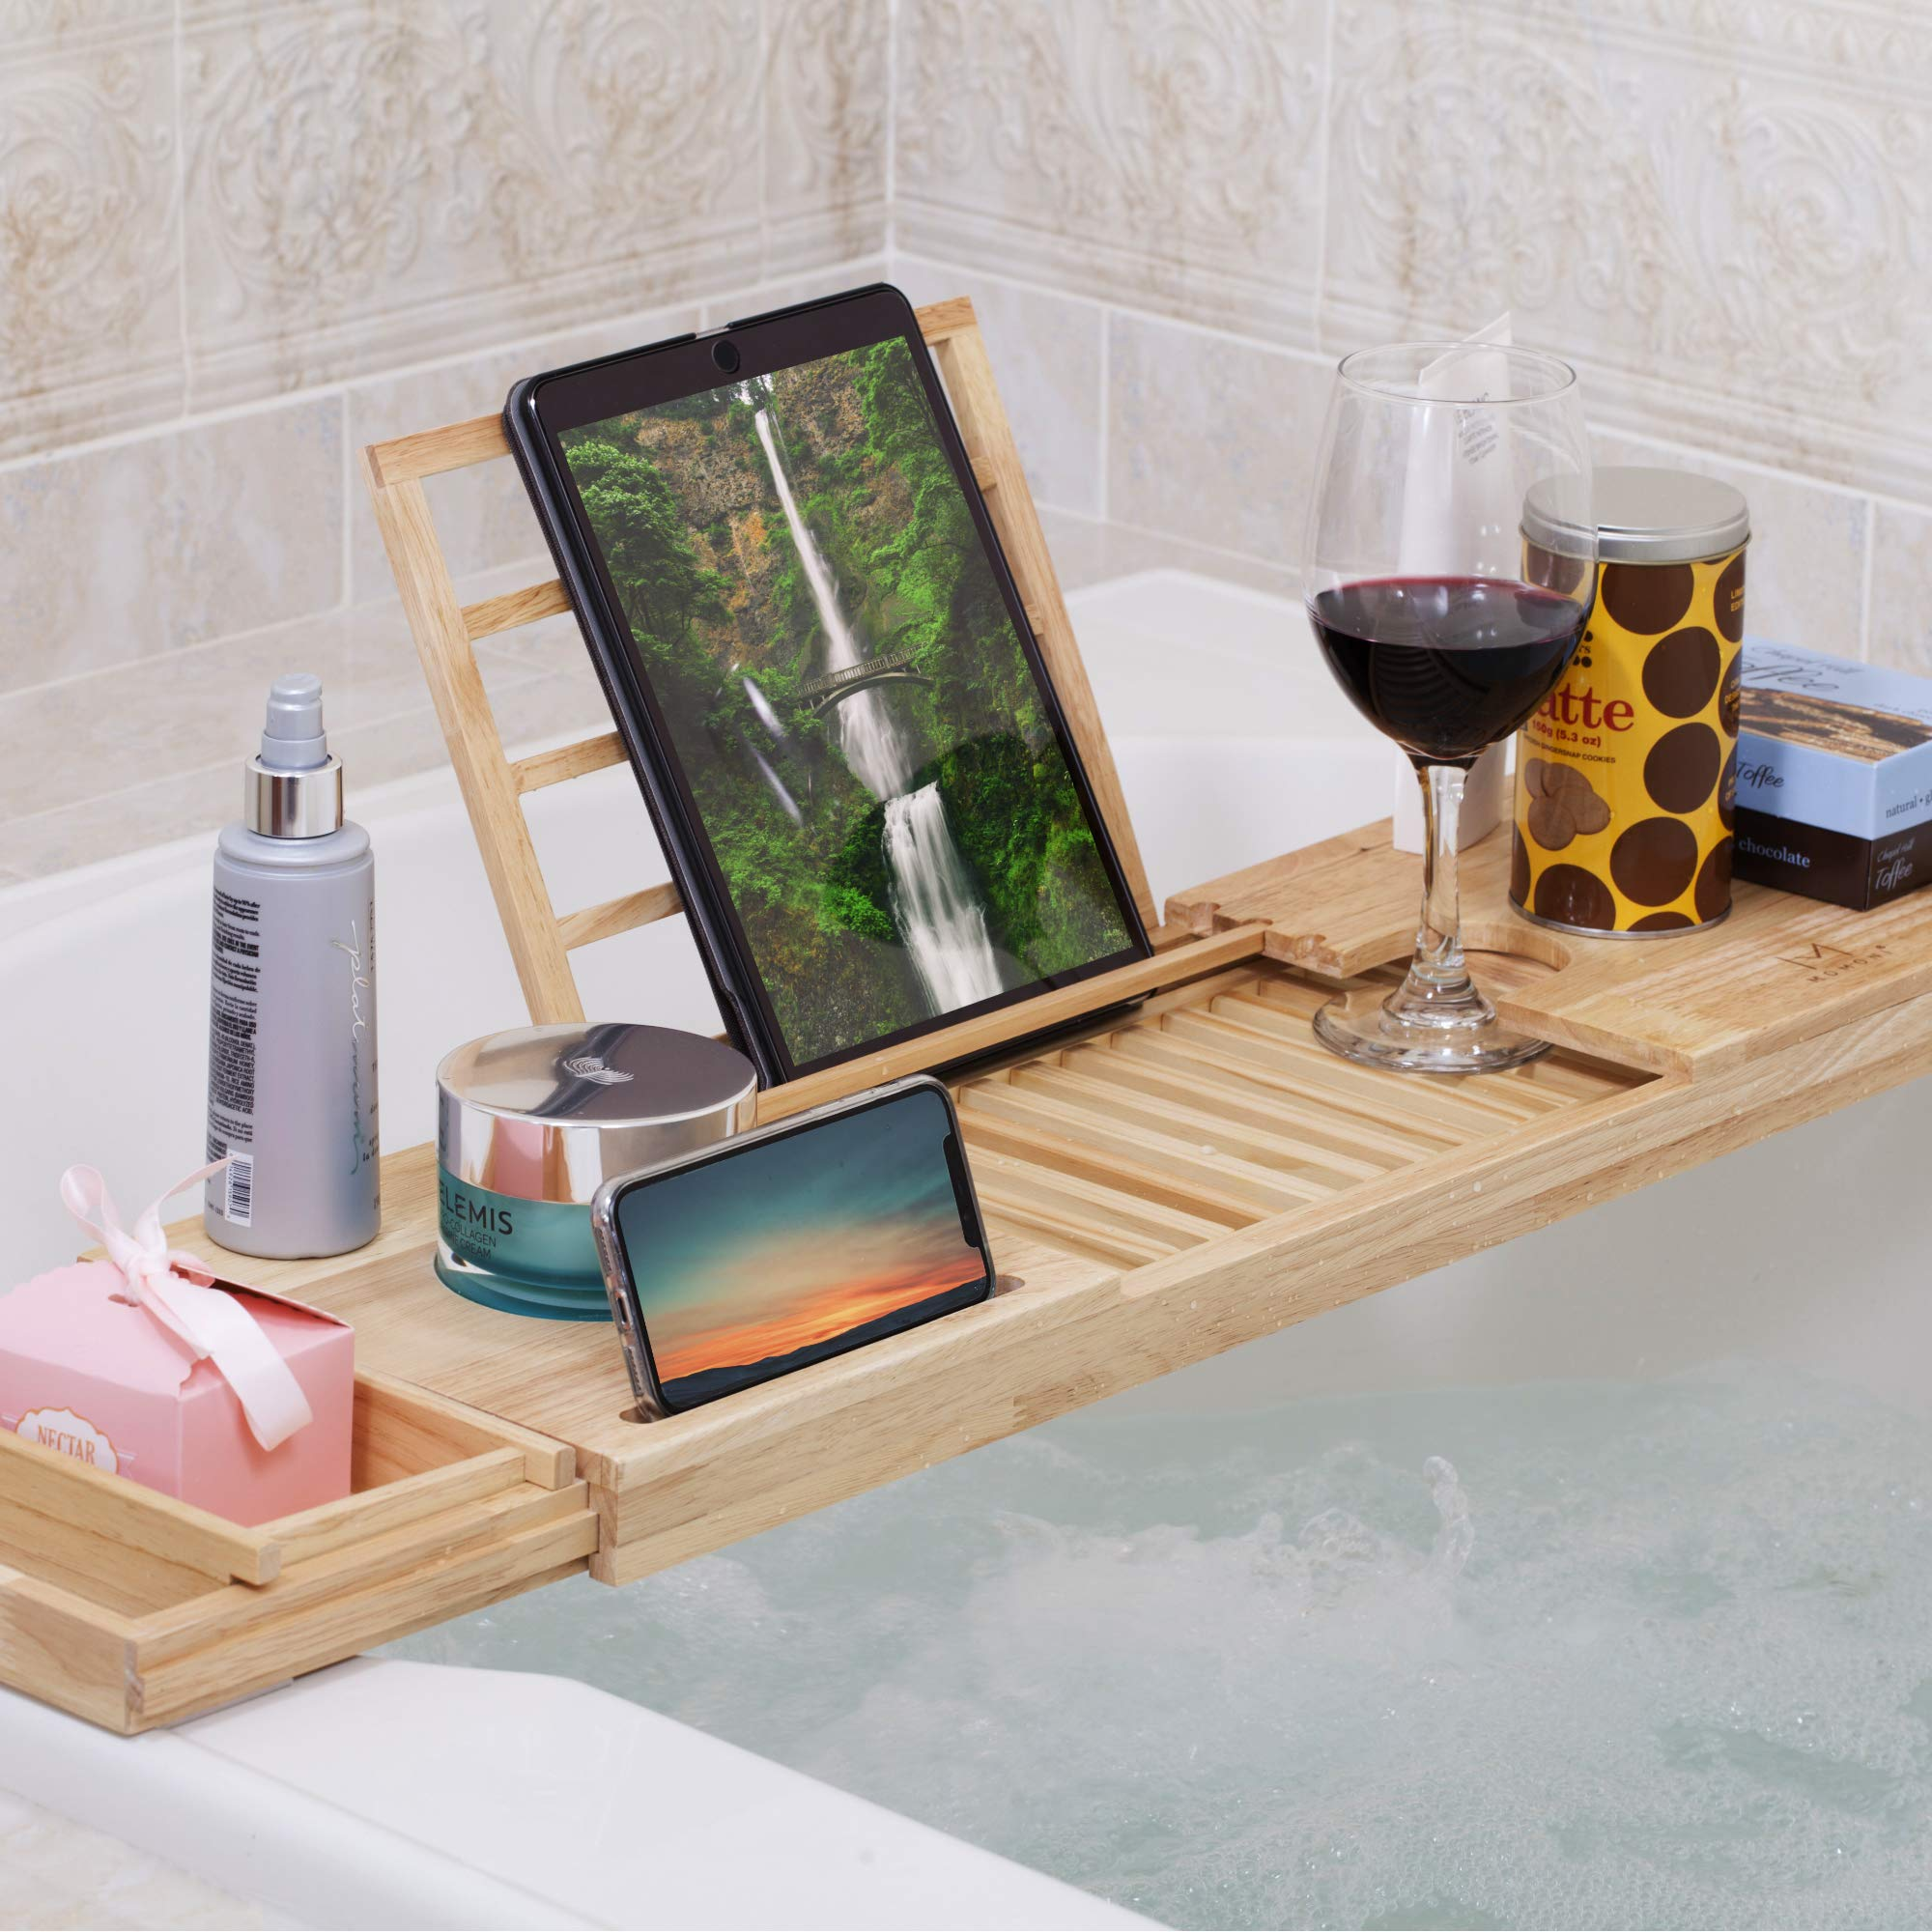 MOMONI Premium Luxury Wood Bathtub Caddy Tray with Expandable Side Holders Non Slip Bathtub Bed and Bath Table Tray with Book, Tablet, Cellphone Holder Him and Her Gift Idea